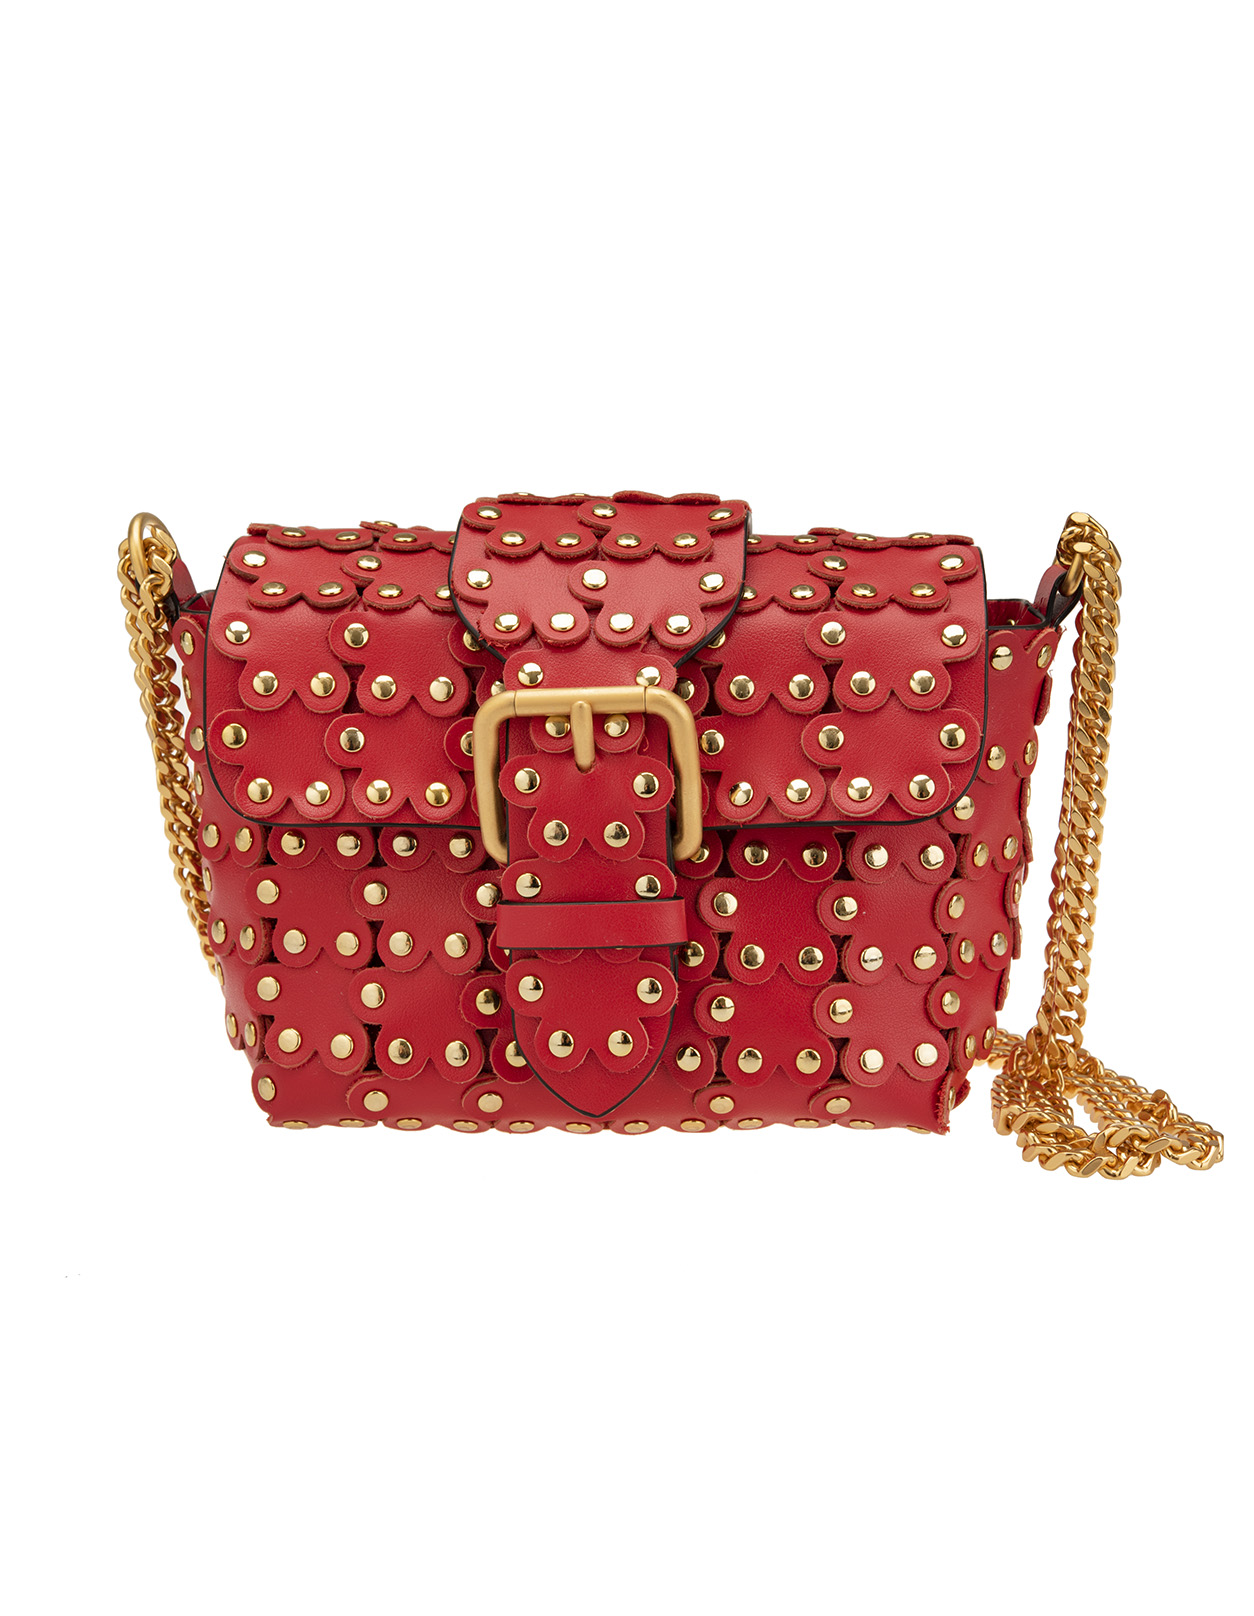 0604497531 Flower Puzzle Bag - RED VALENTINO - Russocapri